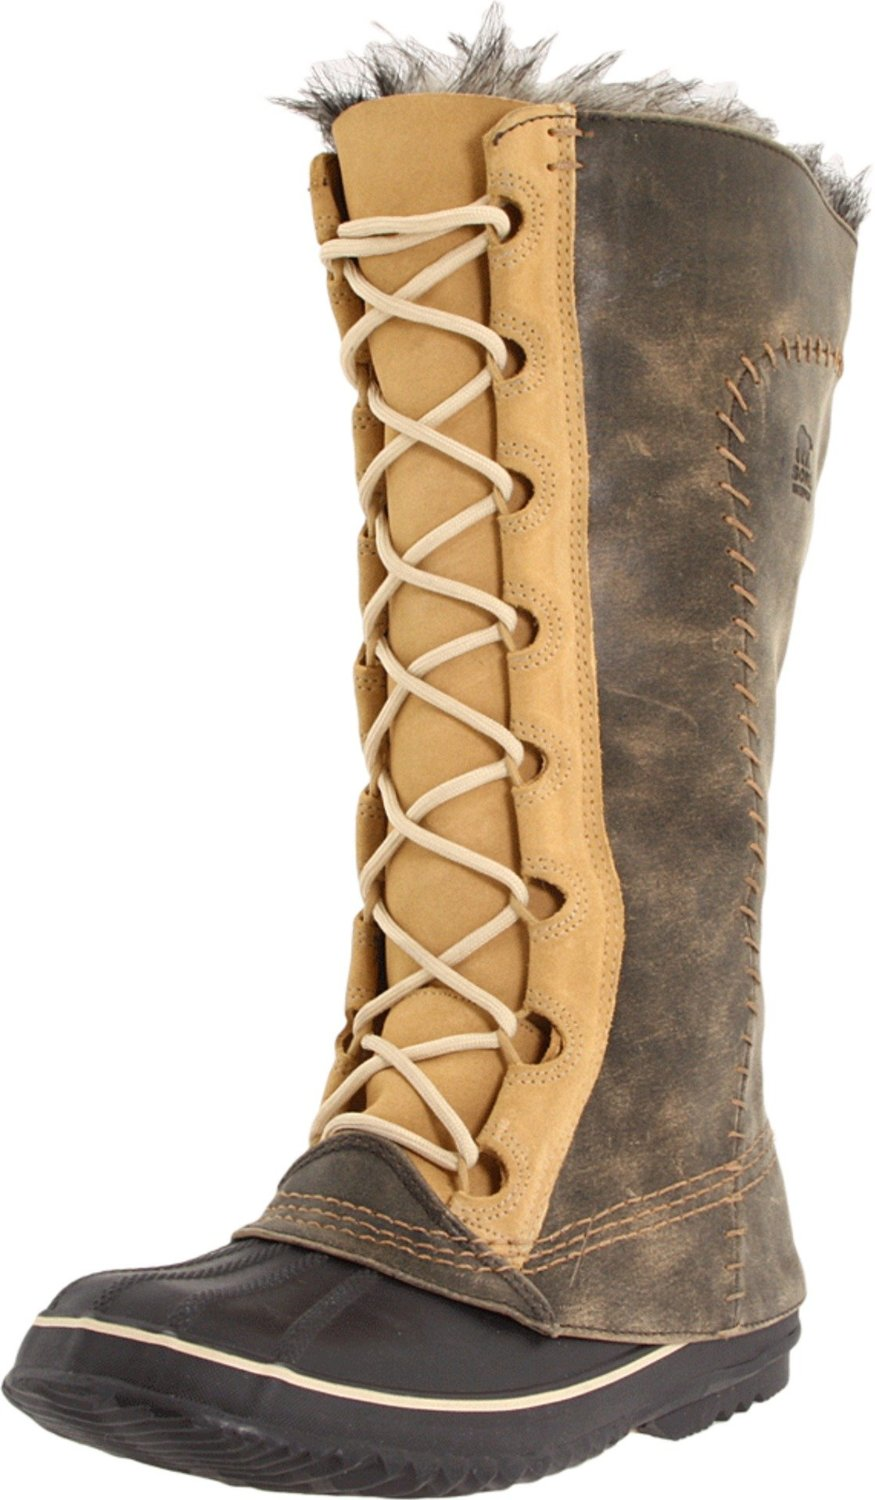 SOREL WOMENS CATE THE GREAT SNOW WINTER BOOTS LACE UP